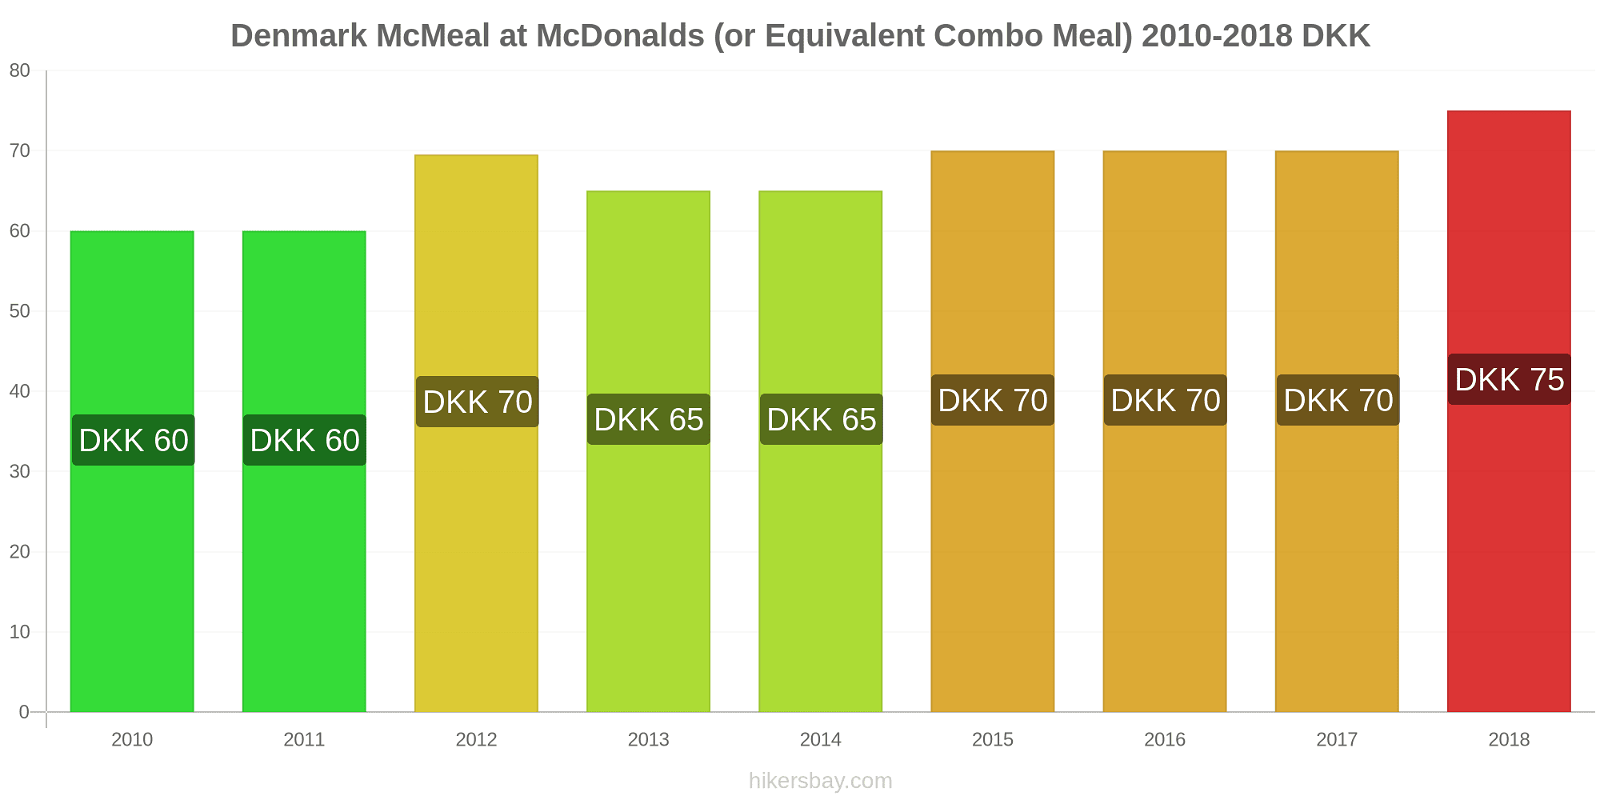 Denmark price changes McMeal at McDonalds (or Equivalent Combo Meal) hikersbay.com